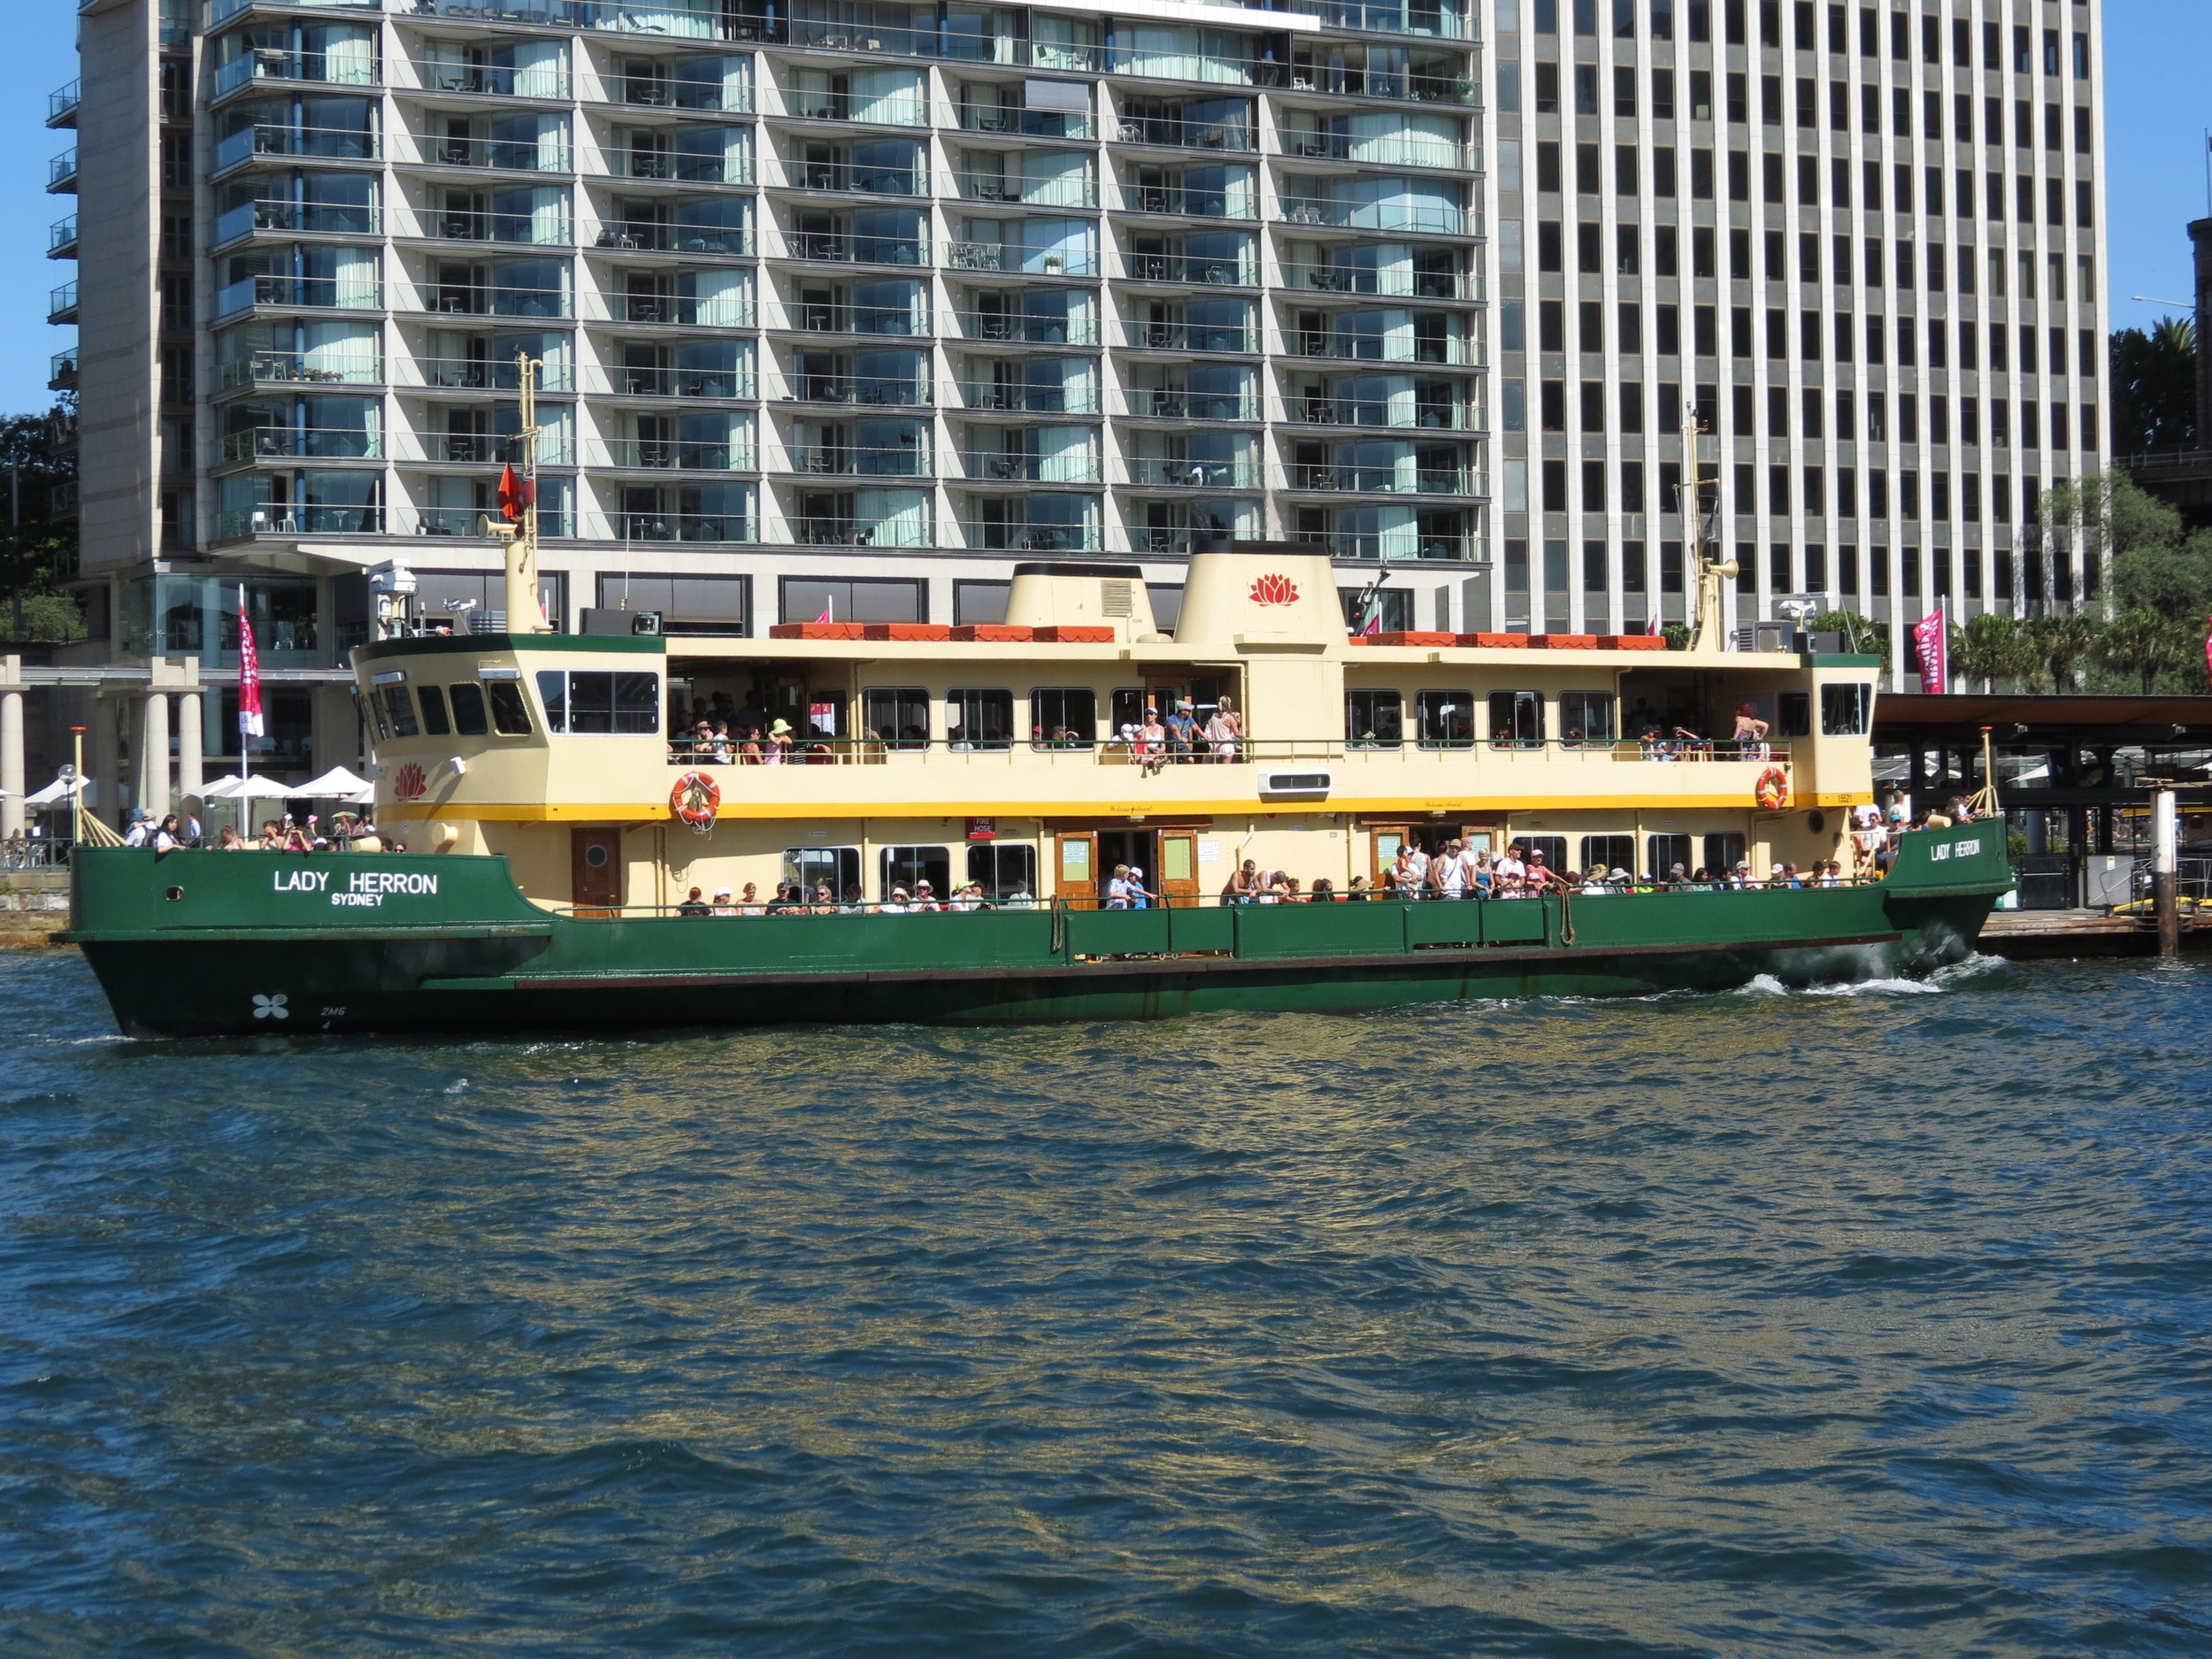 Sydney ferries can take you anywhere.